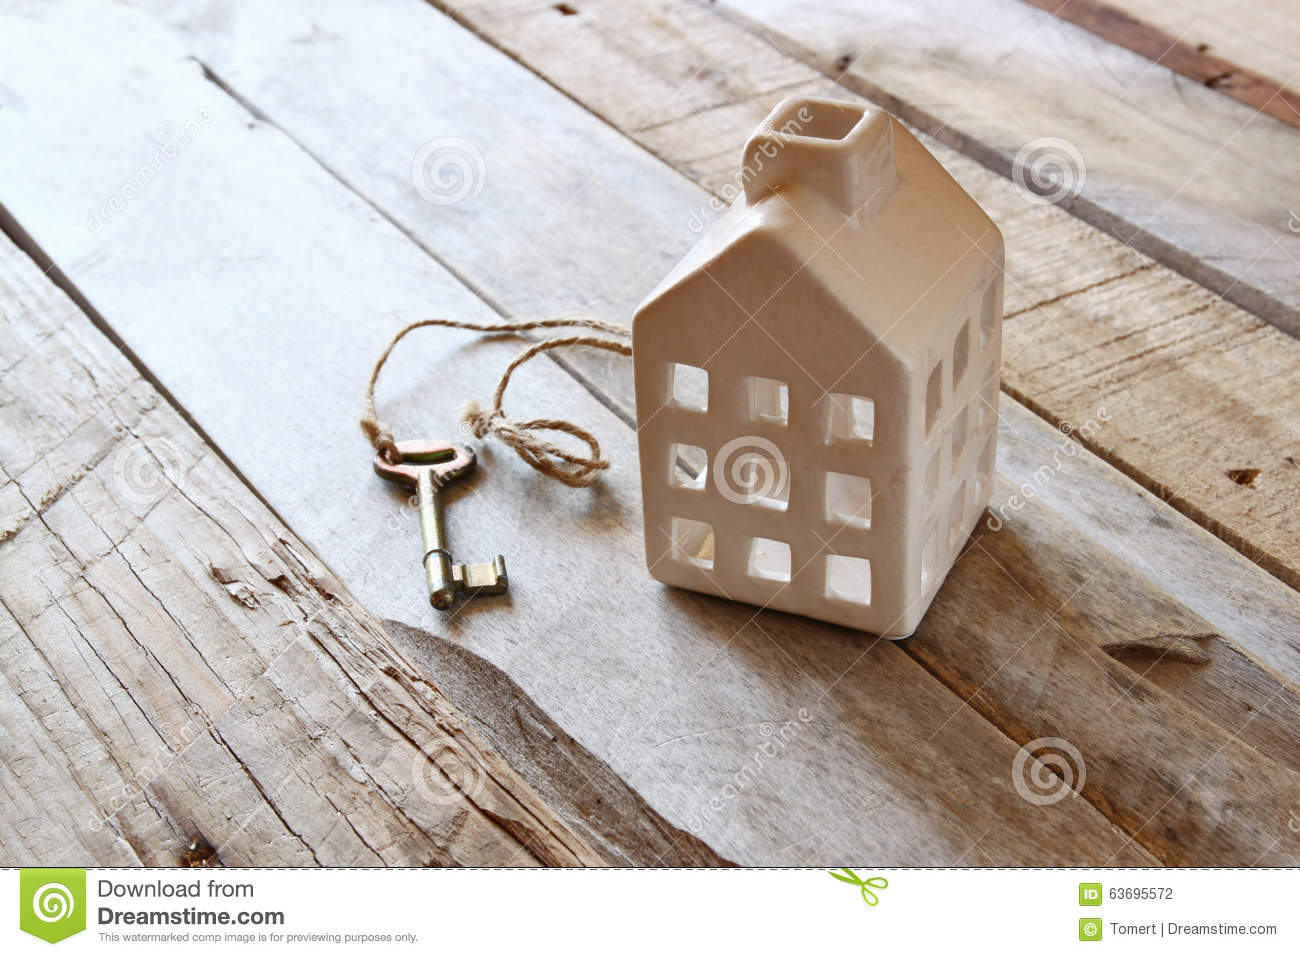 Image of small miniature house and old key over rustic wooden table.